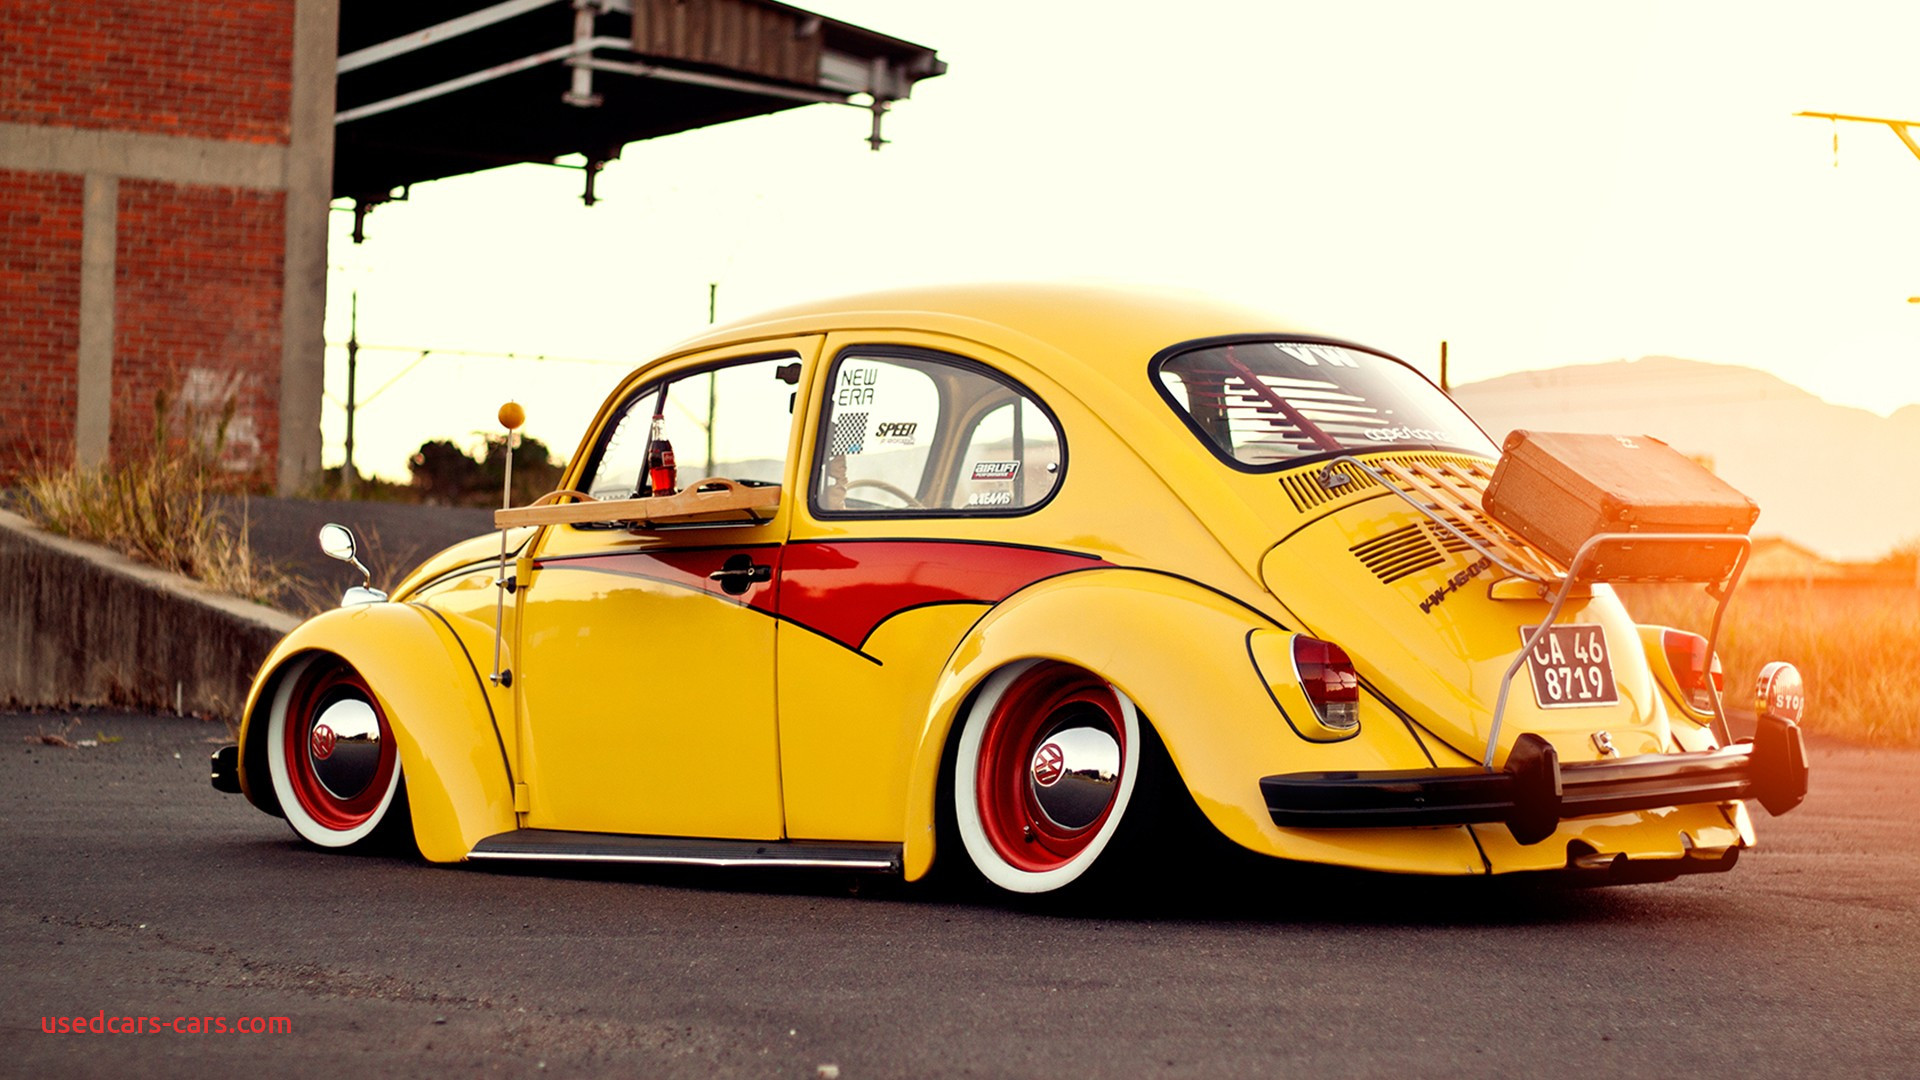 54 vw beetle wallpaper hd